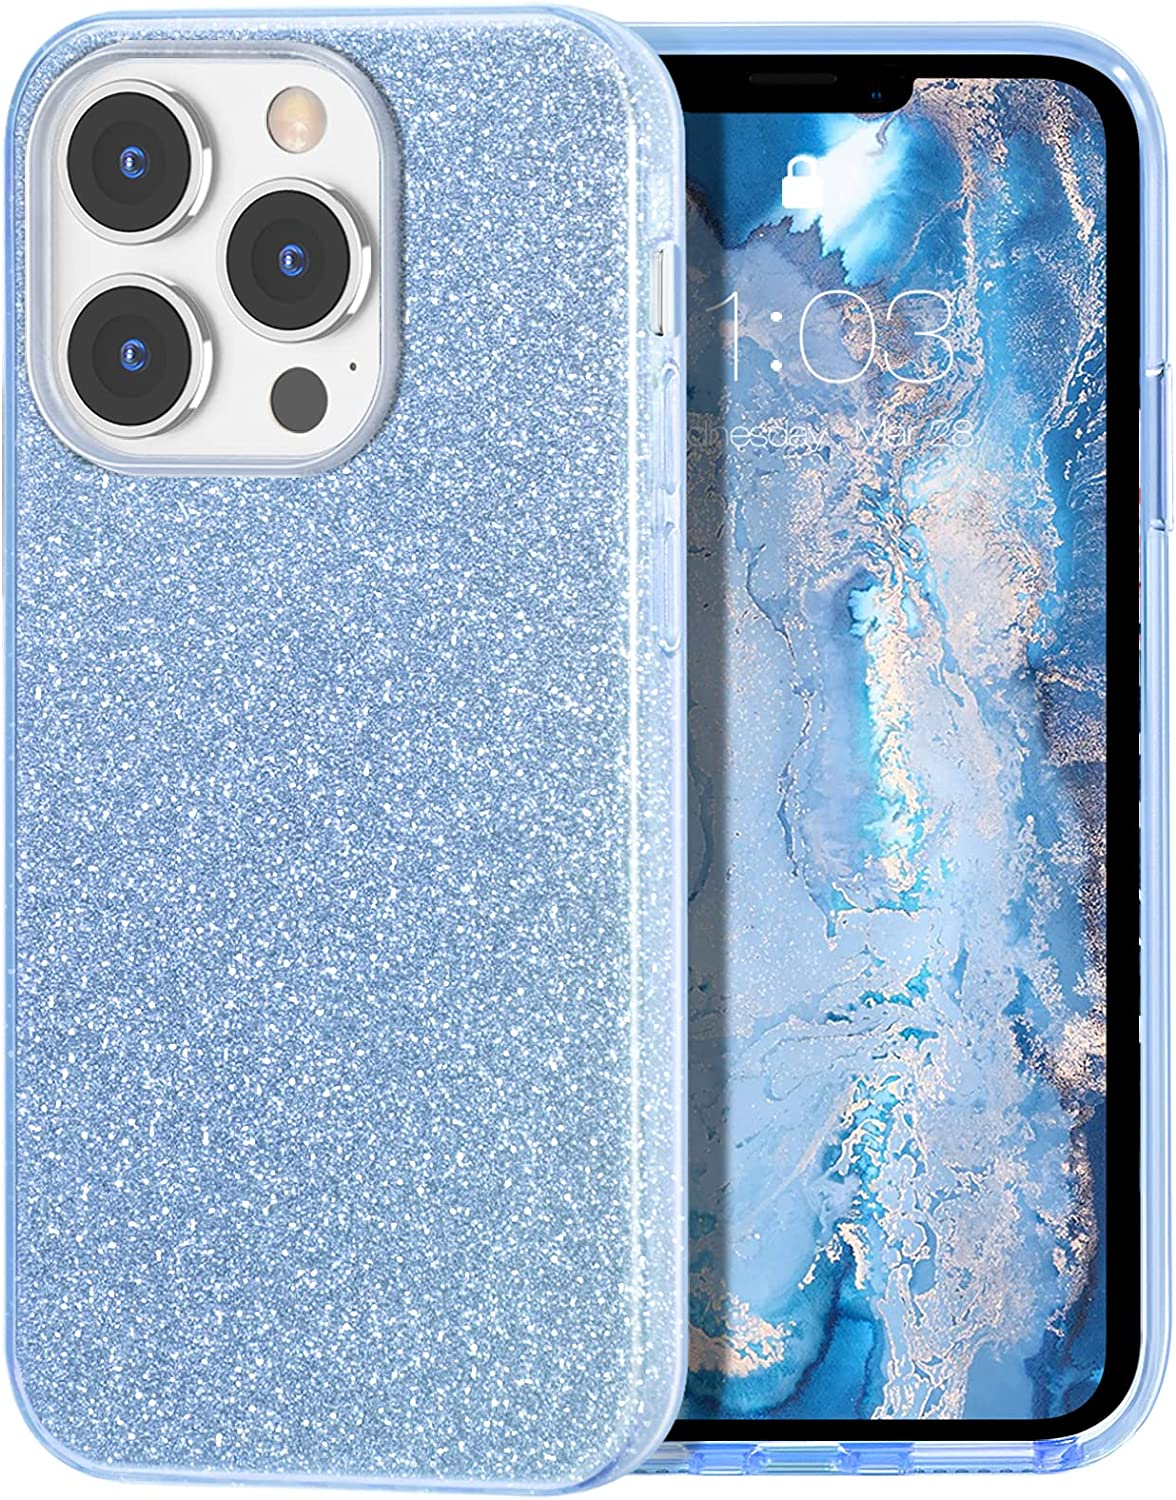 MILPROX Compatible with iPhone 13 Pro Case (2021), Glitter Sparkly Shiny Bling Rubber Gel Shell Cases 3 Layers Shockproof Protective Bumper Cover for iPhone 13 Pro 6.1